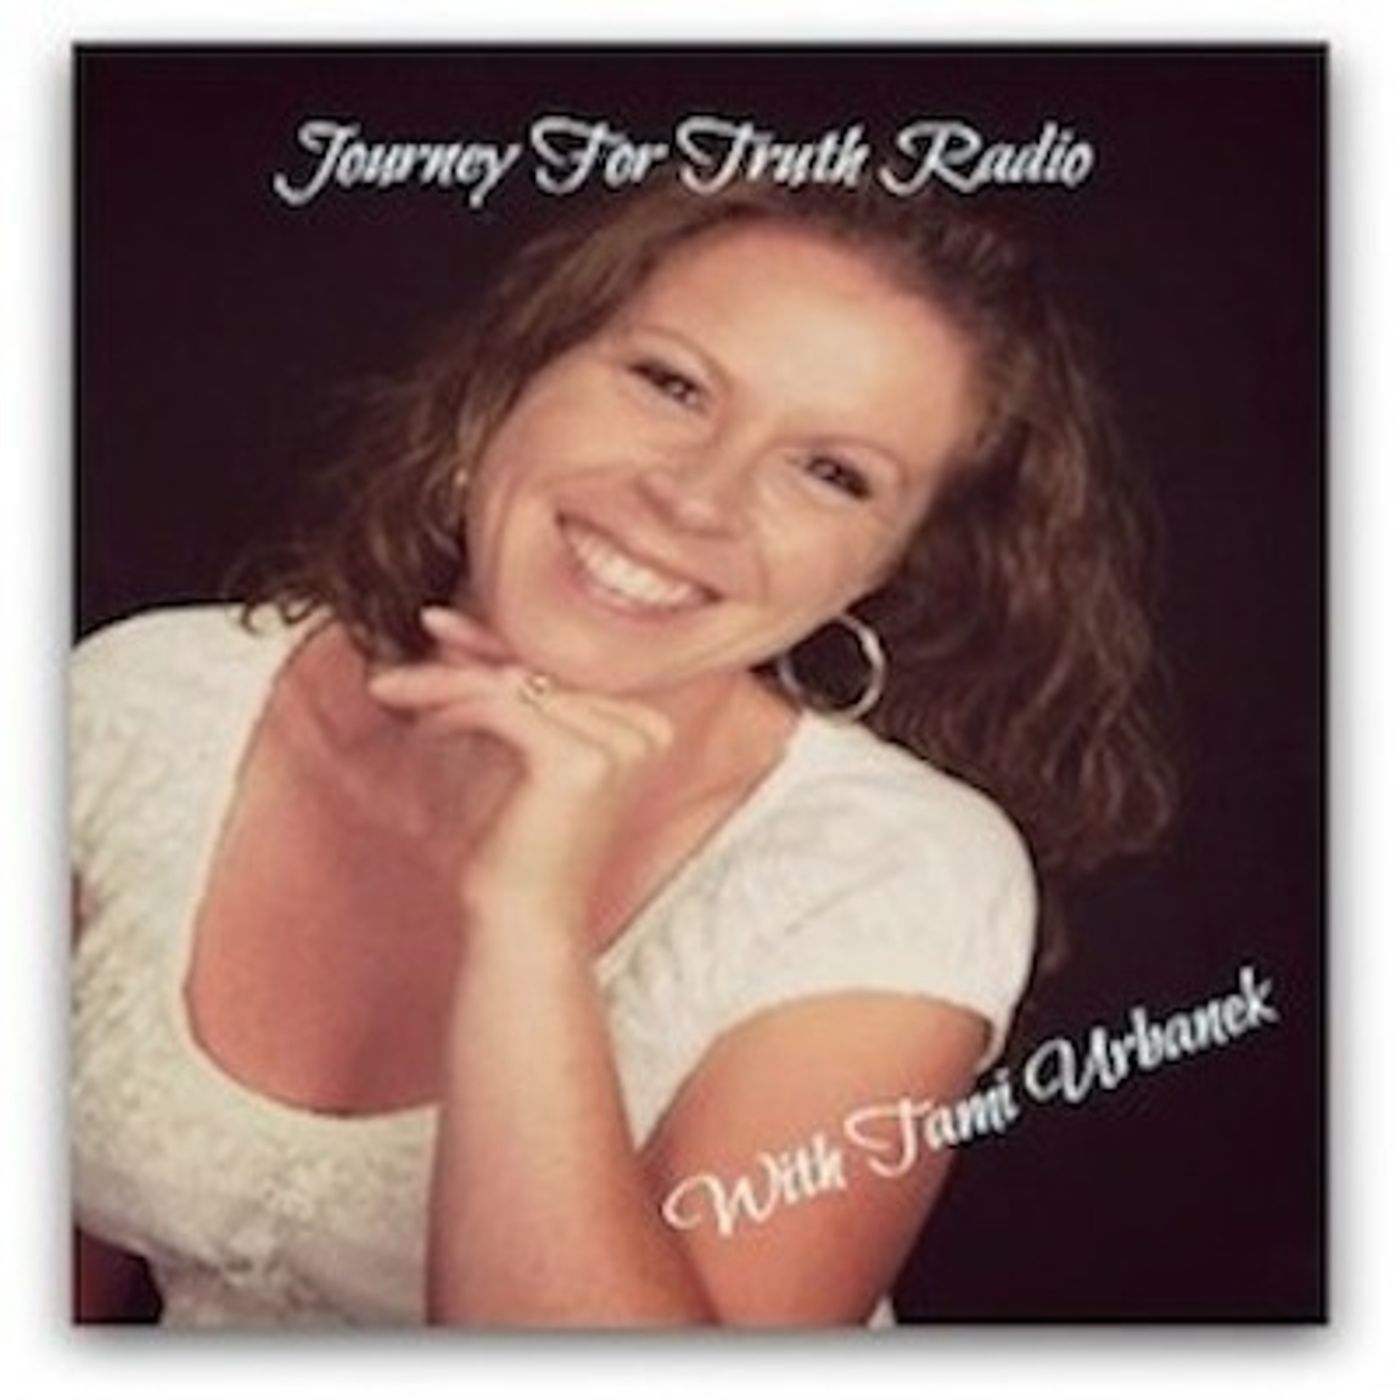 Journey for Truth – Tami Urbanek